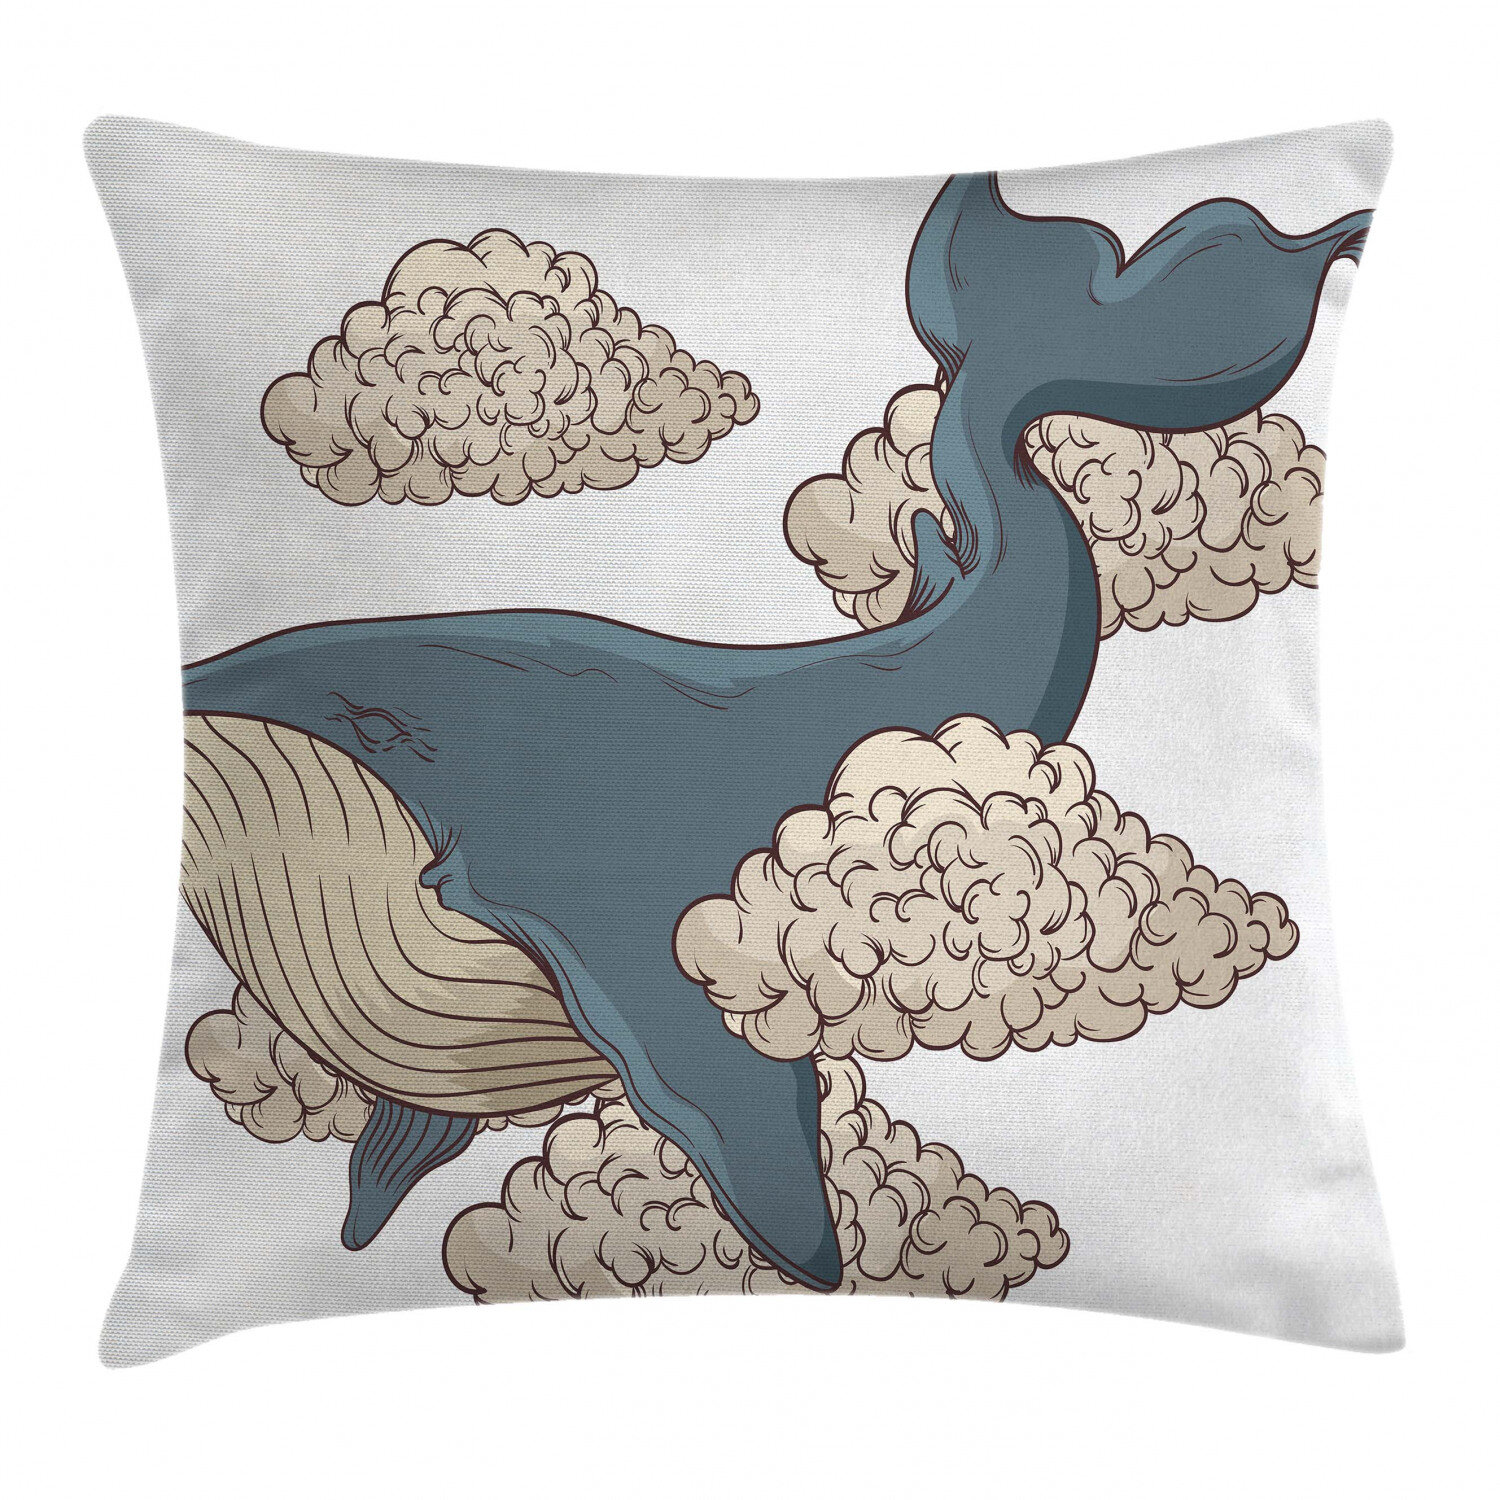 East Urban Home Whale Indoor Outdoor 36 Throw Pillow Cover